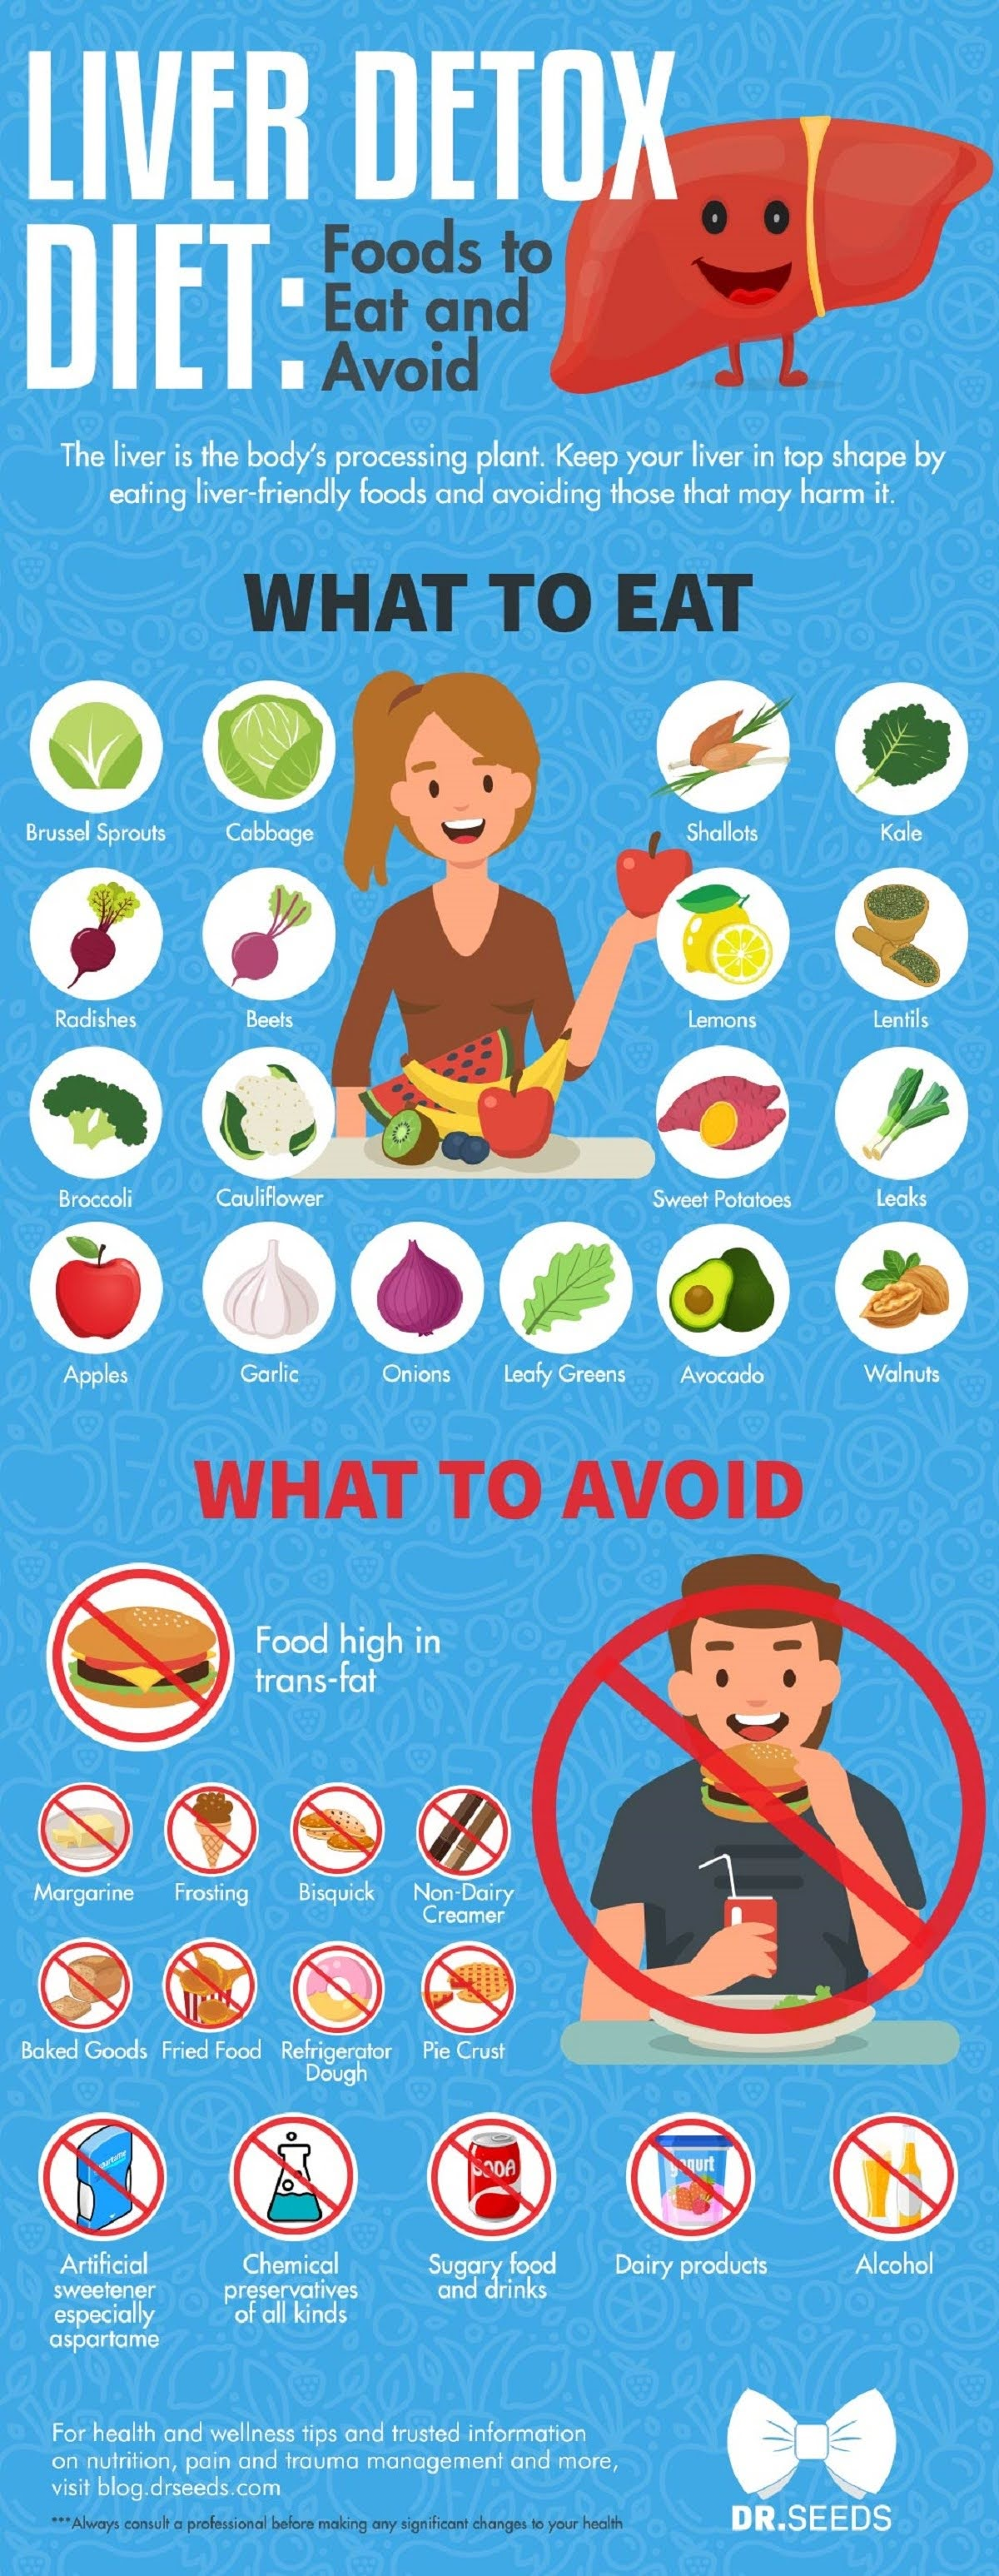 liver-detox-diet-foods-to-eat-and-avoid-infographic